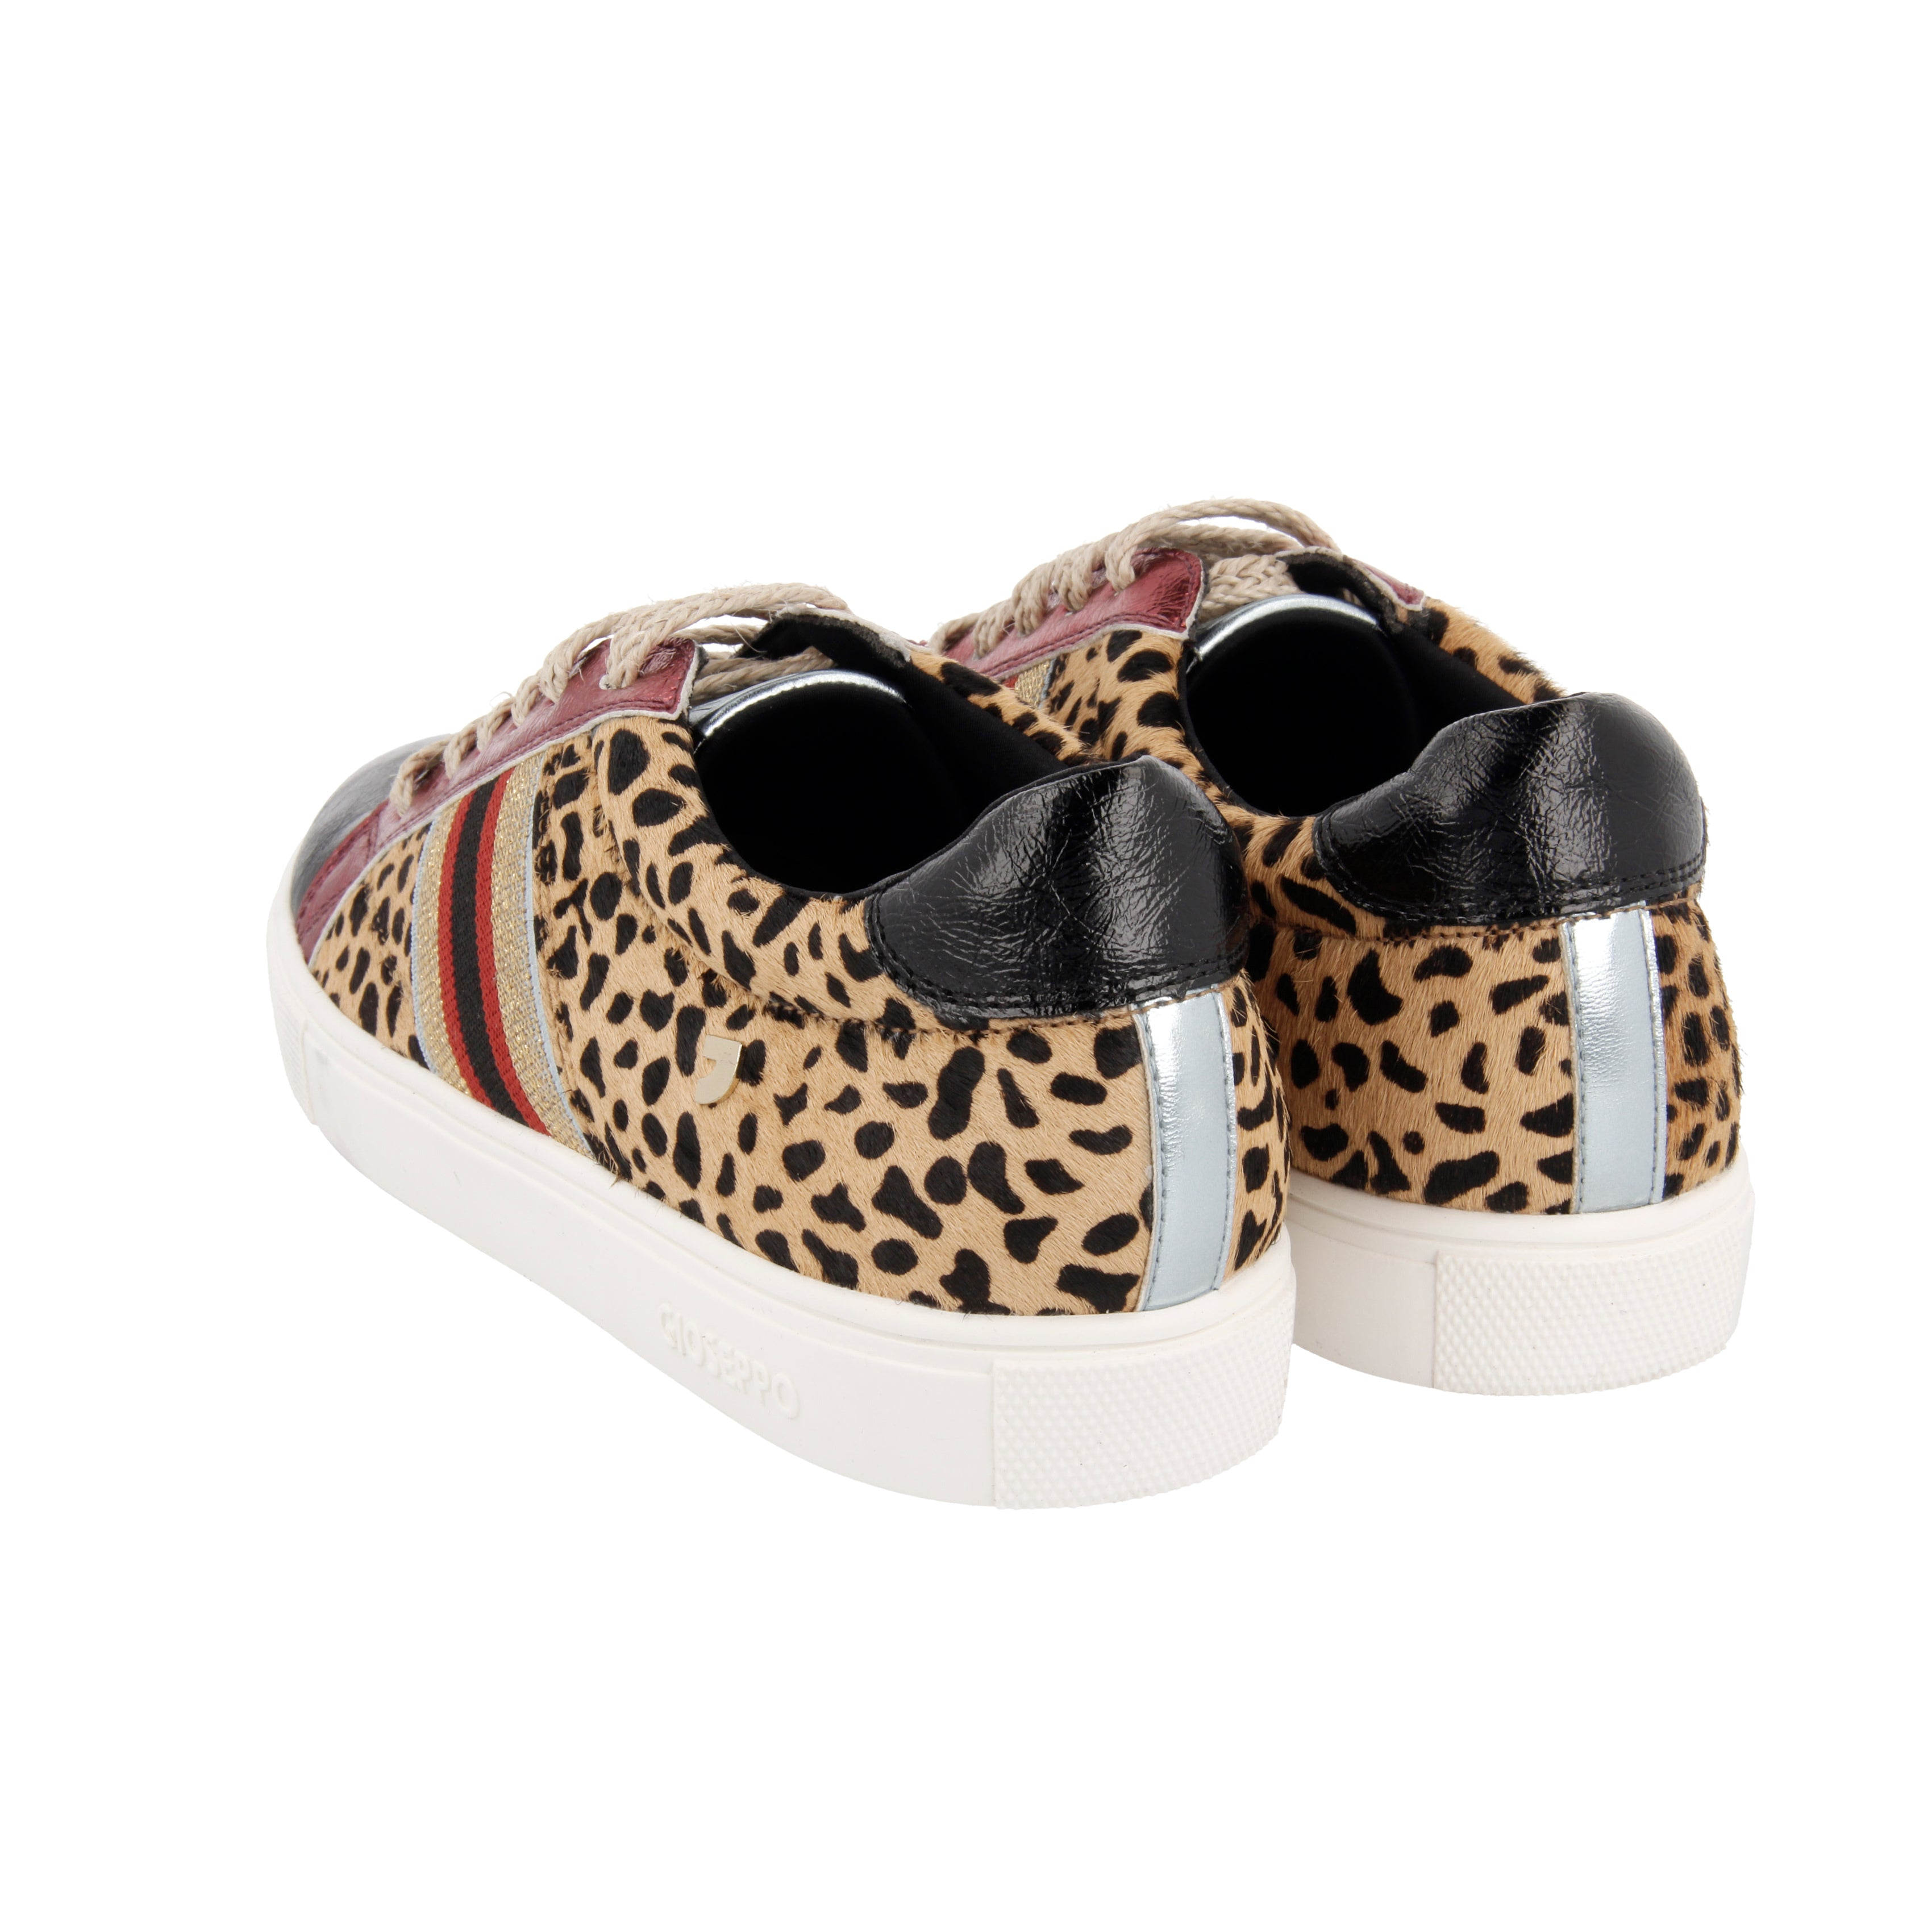 Gioseppo Leopard Versalles Sneakers